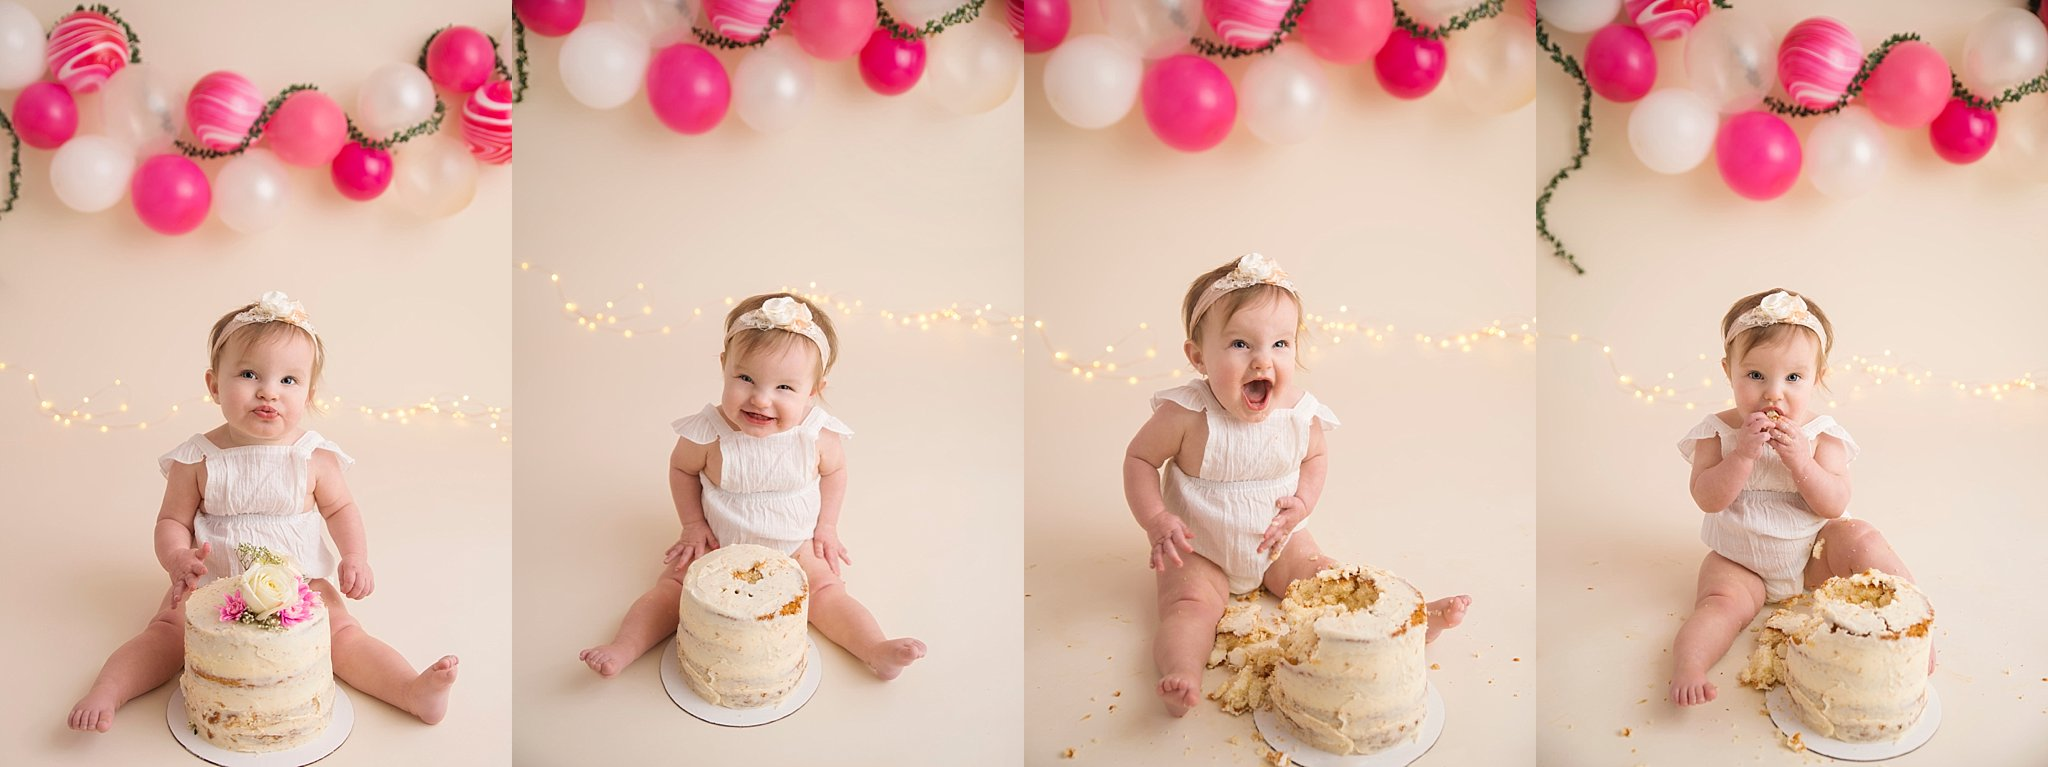 Fort McMurray photographer, Fort McMurray child photographer, cake smash session, cake smash photos, naked cake